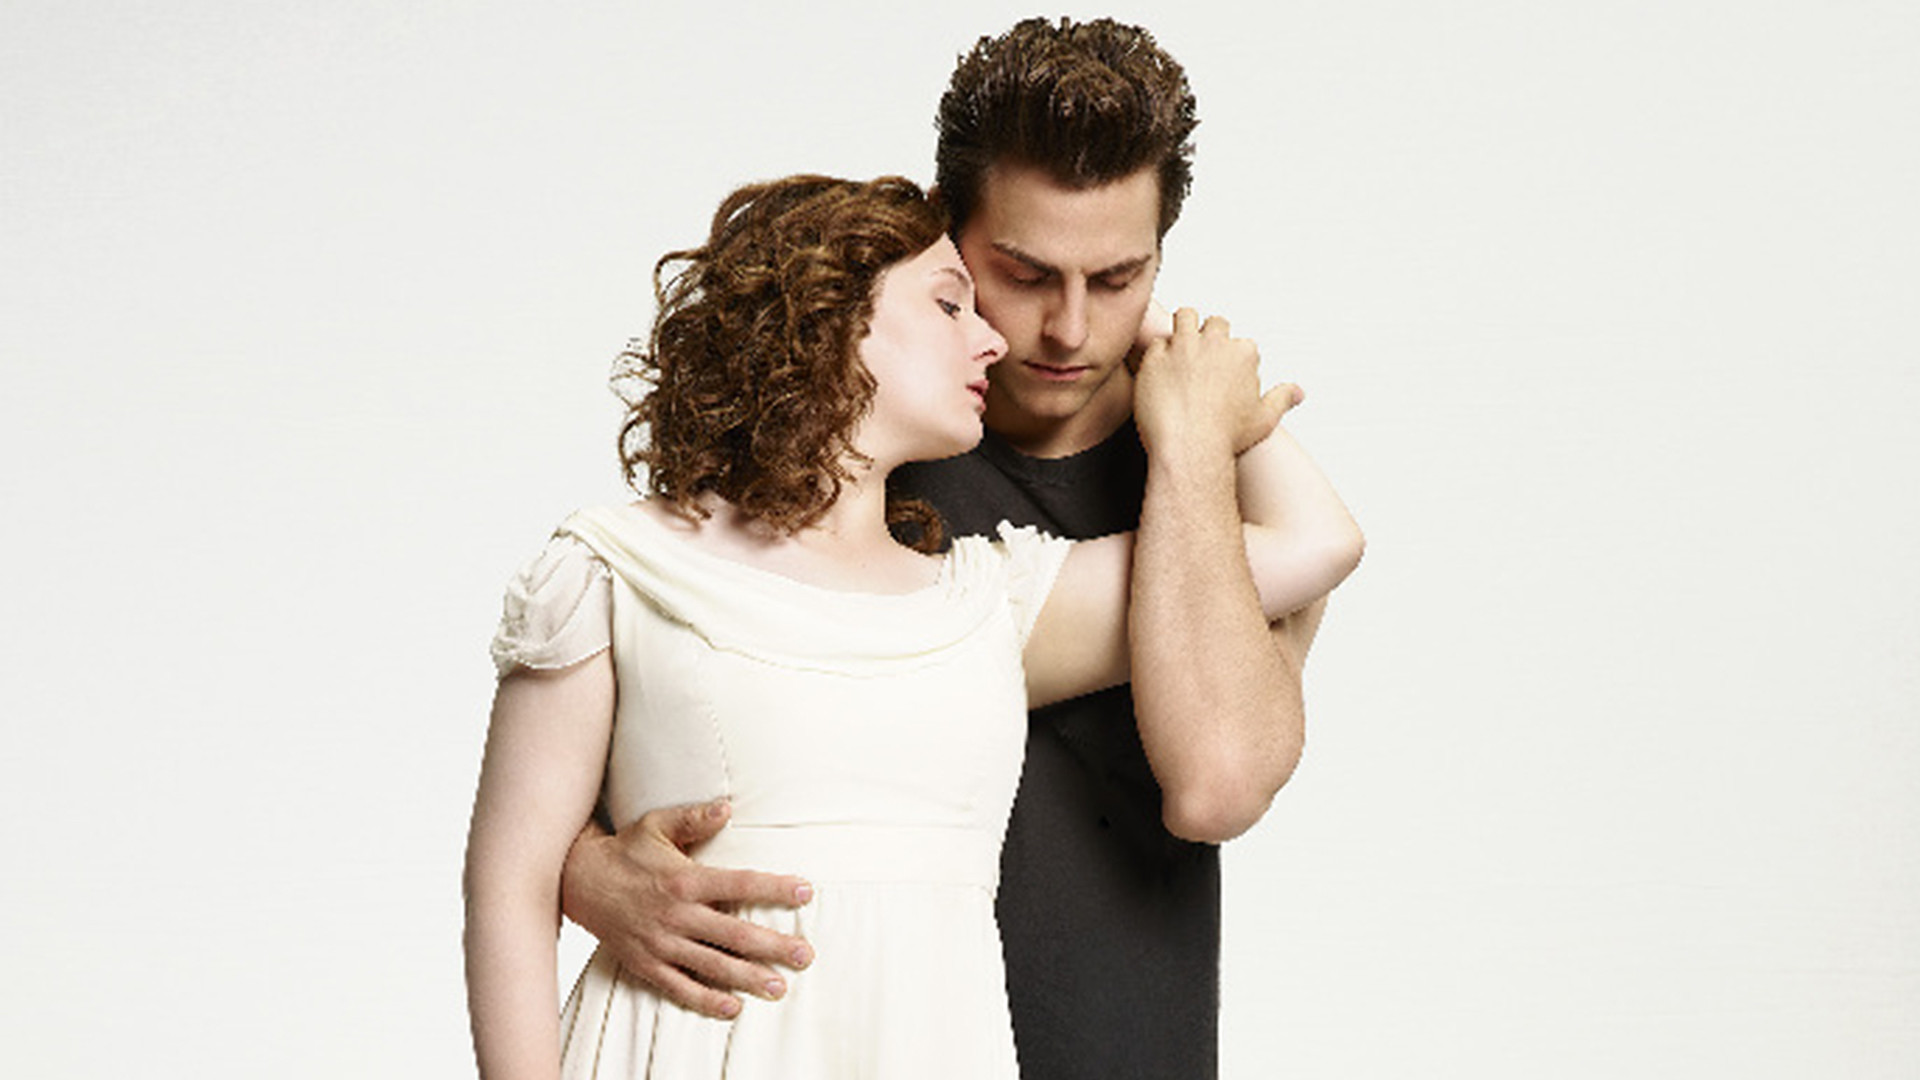 Res: 1920x1080, Baby and Johnny are up close and adorable in first pics from 'Dirty Dancing'  remake - TODAY.com